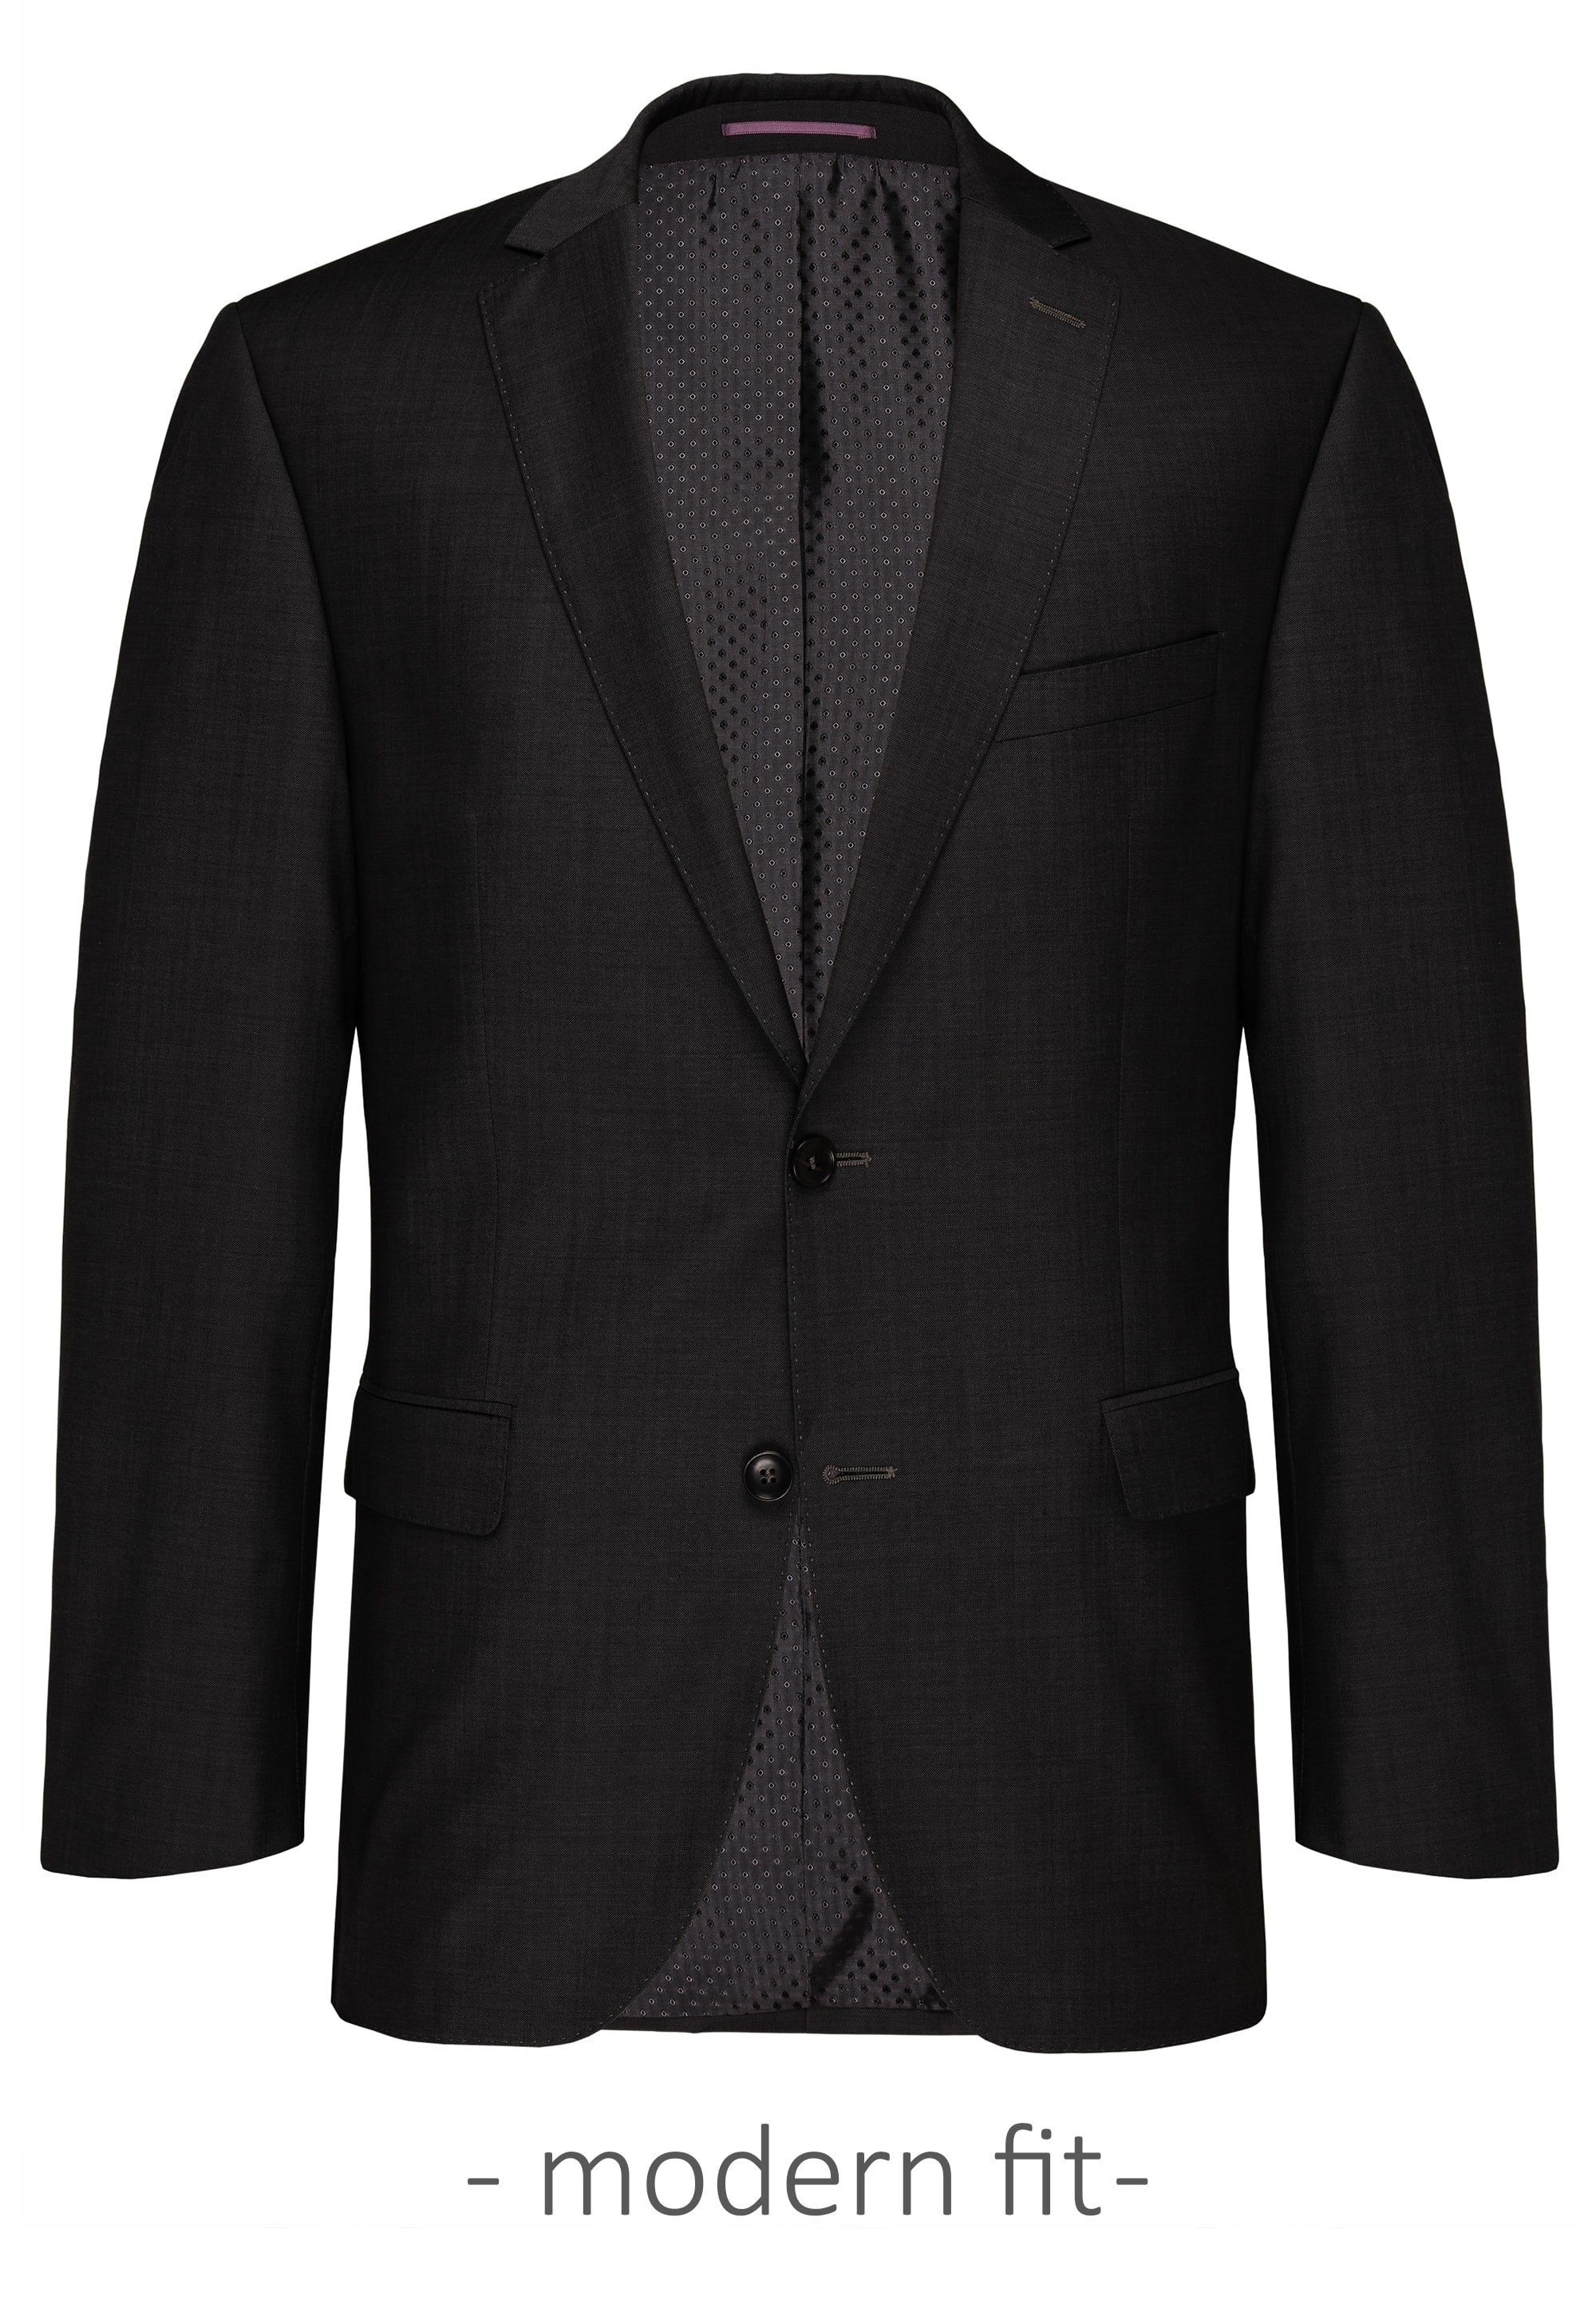 Carl Gross Black Suit Jacket (Piece 1)